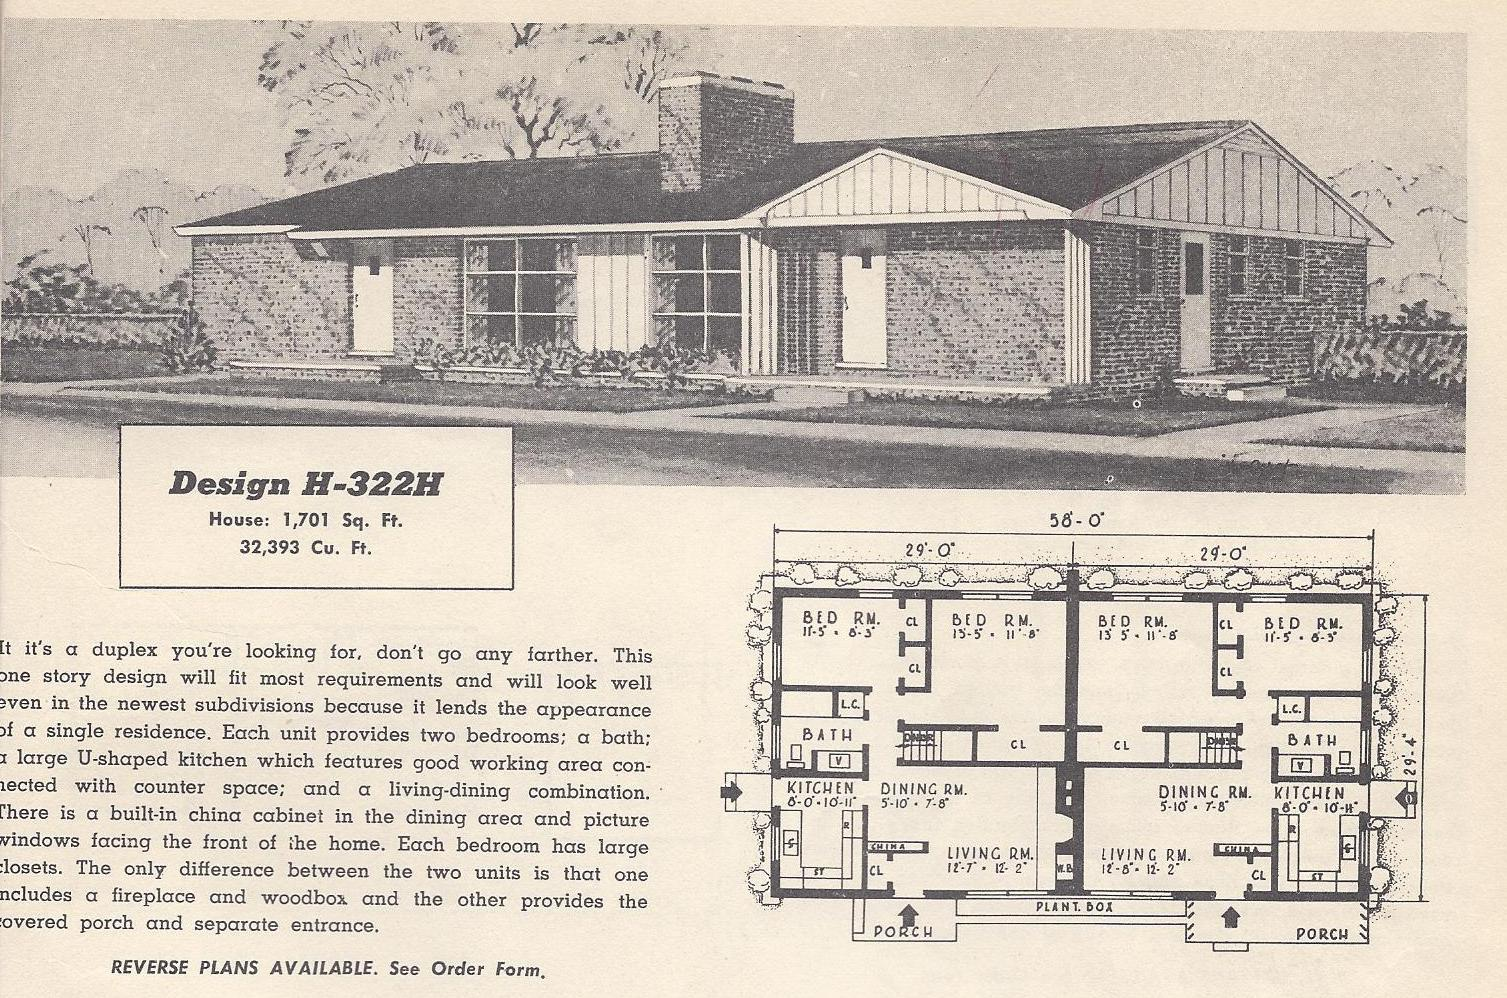 Vintage house plans 322h antique alter ego for Vintage home plans